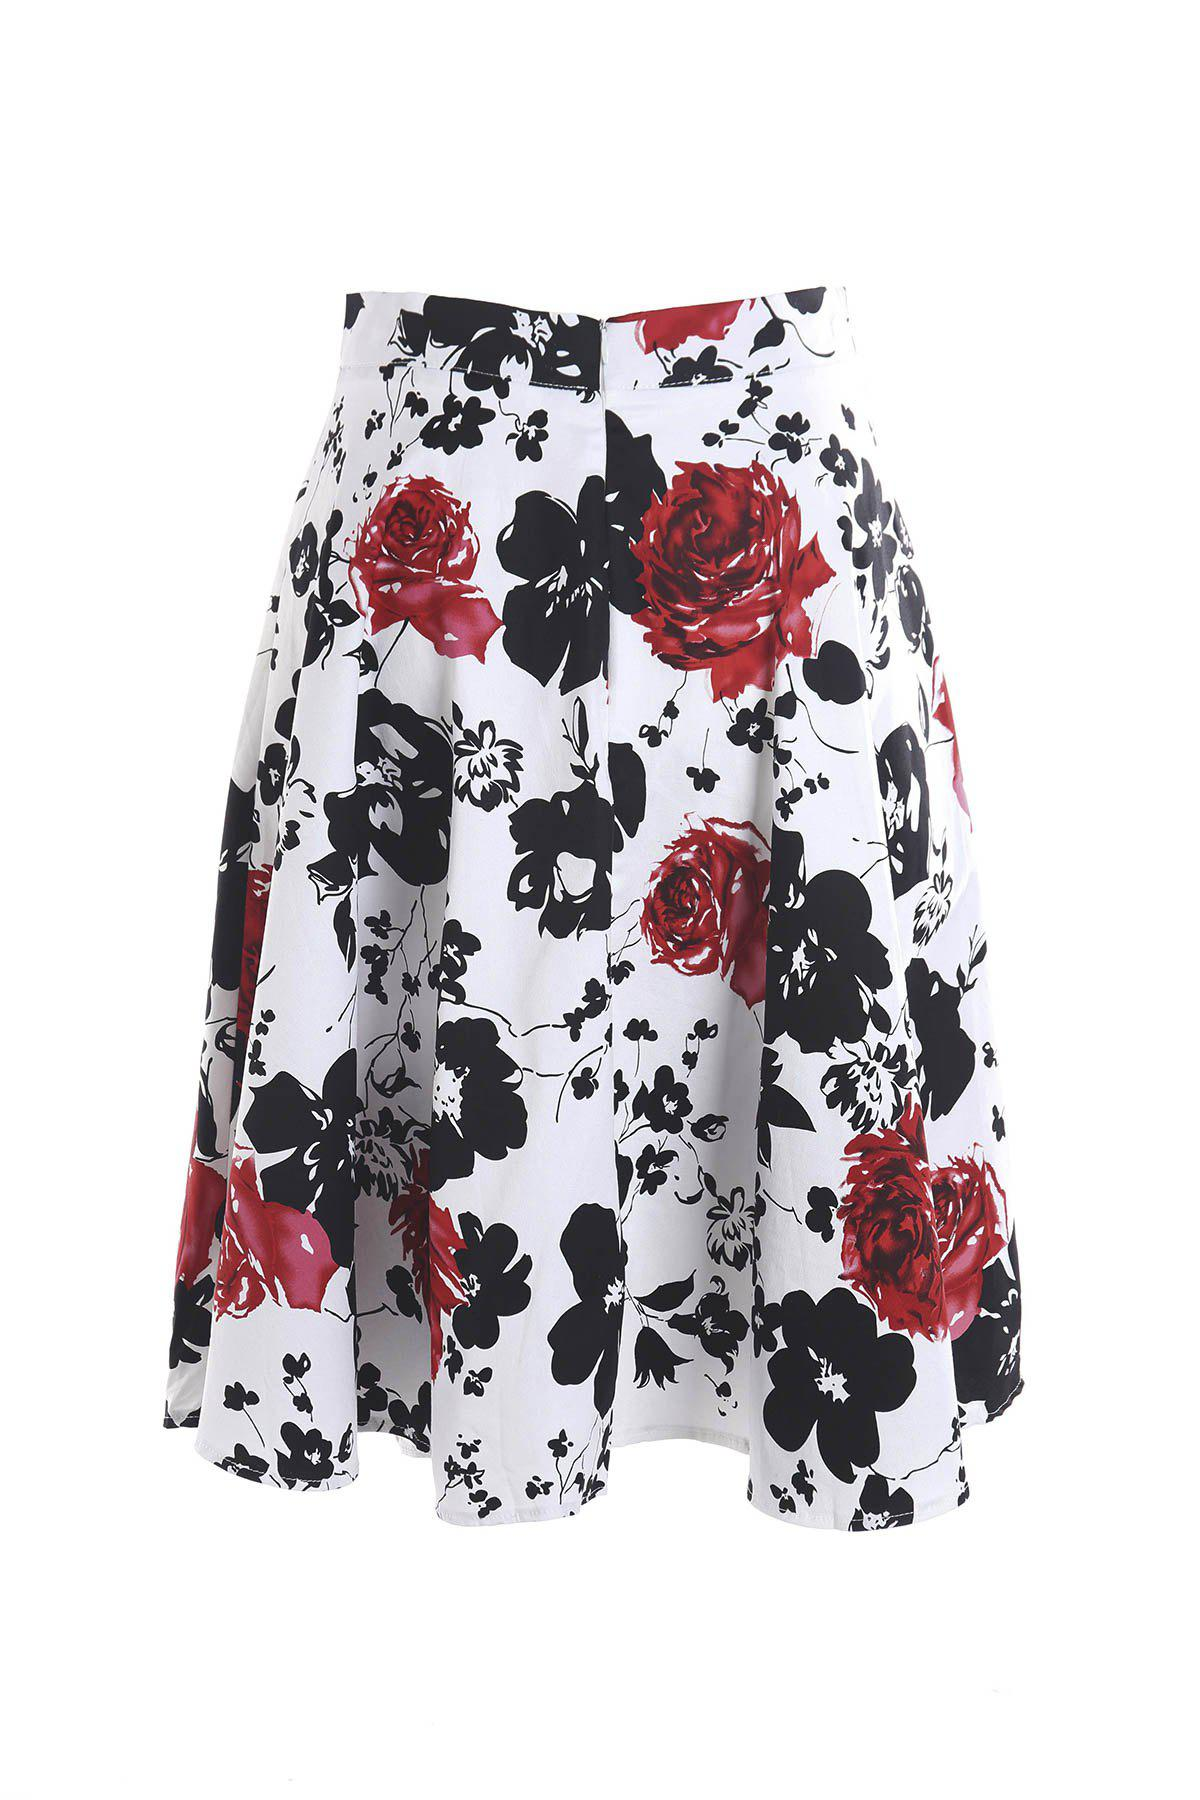 Vintage Style High-Waisted A-Line Floral Print Women's Skirt - RED/WHITE M